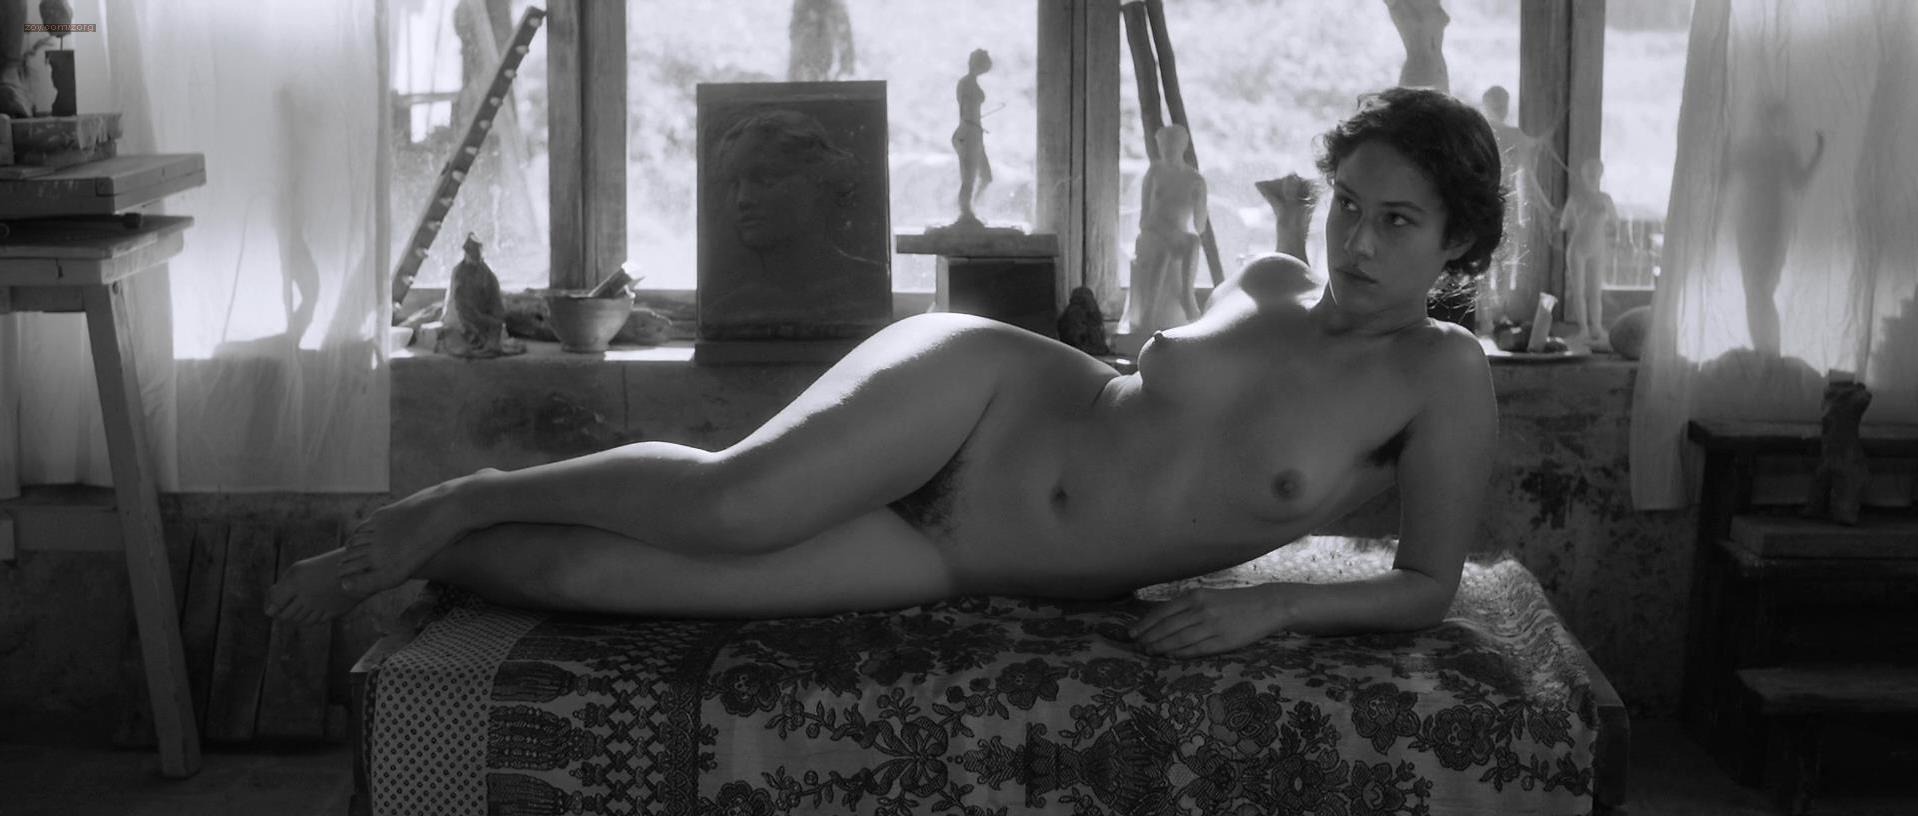 Aida Folch nude - The Artist and the Model (2012)